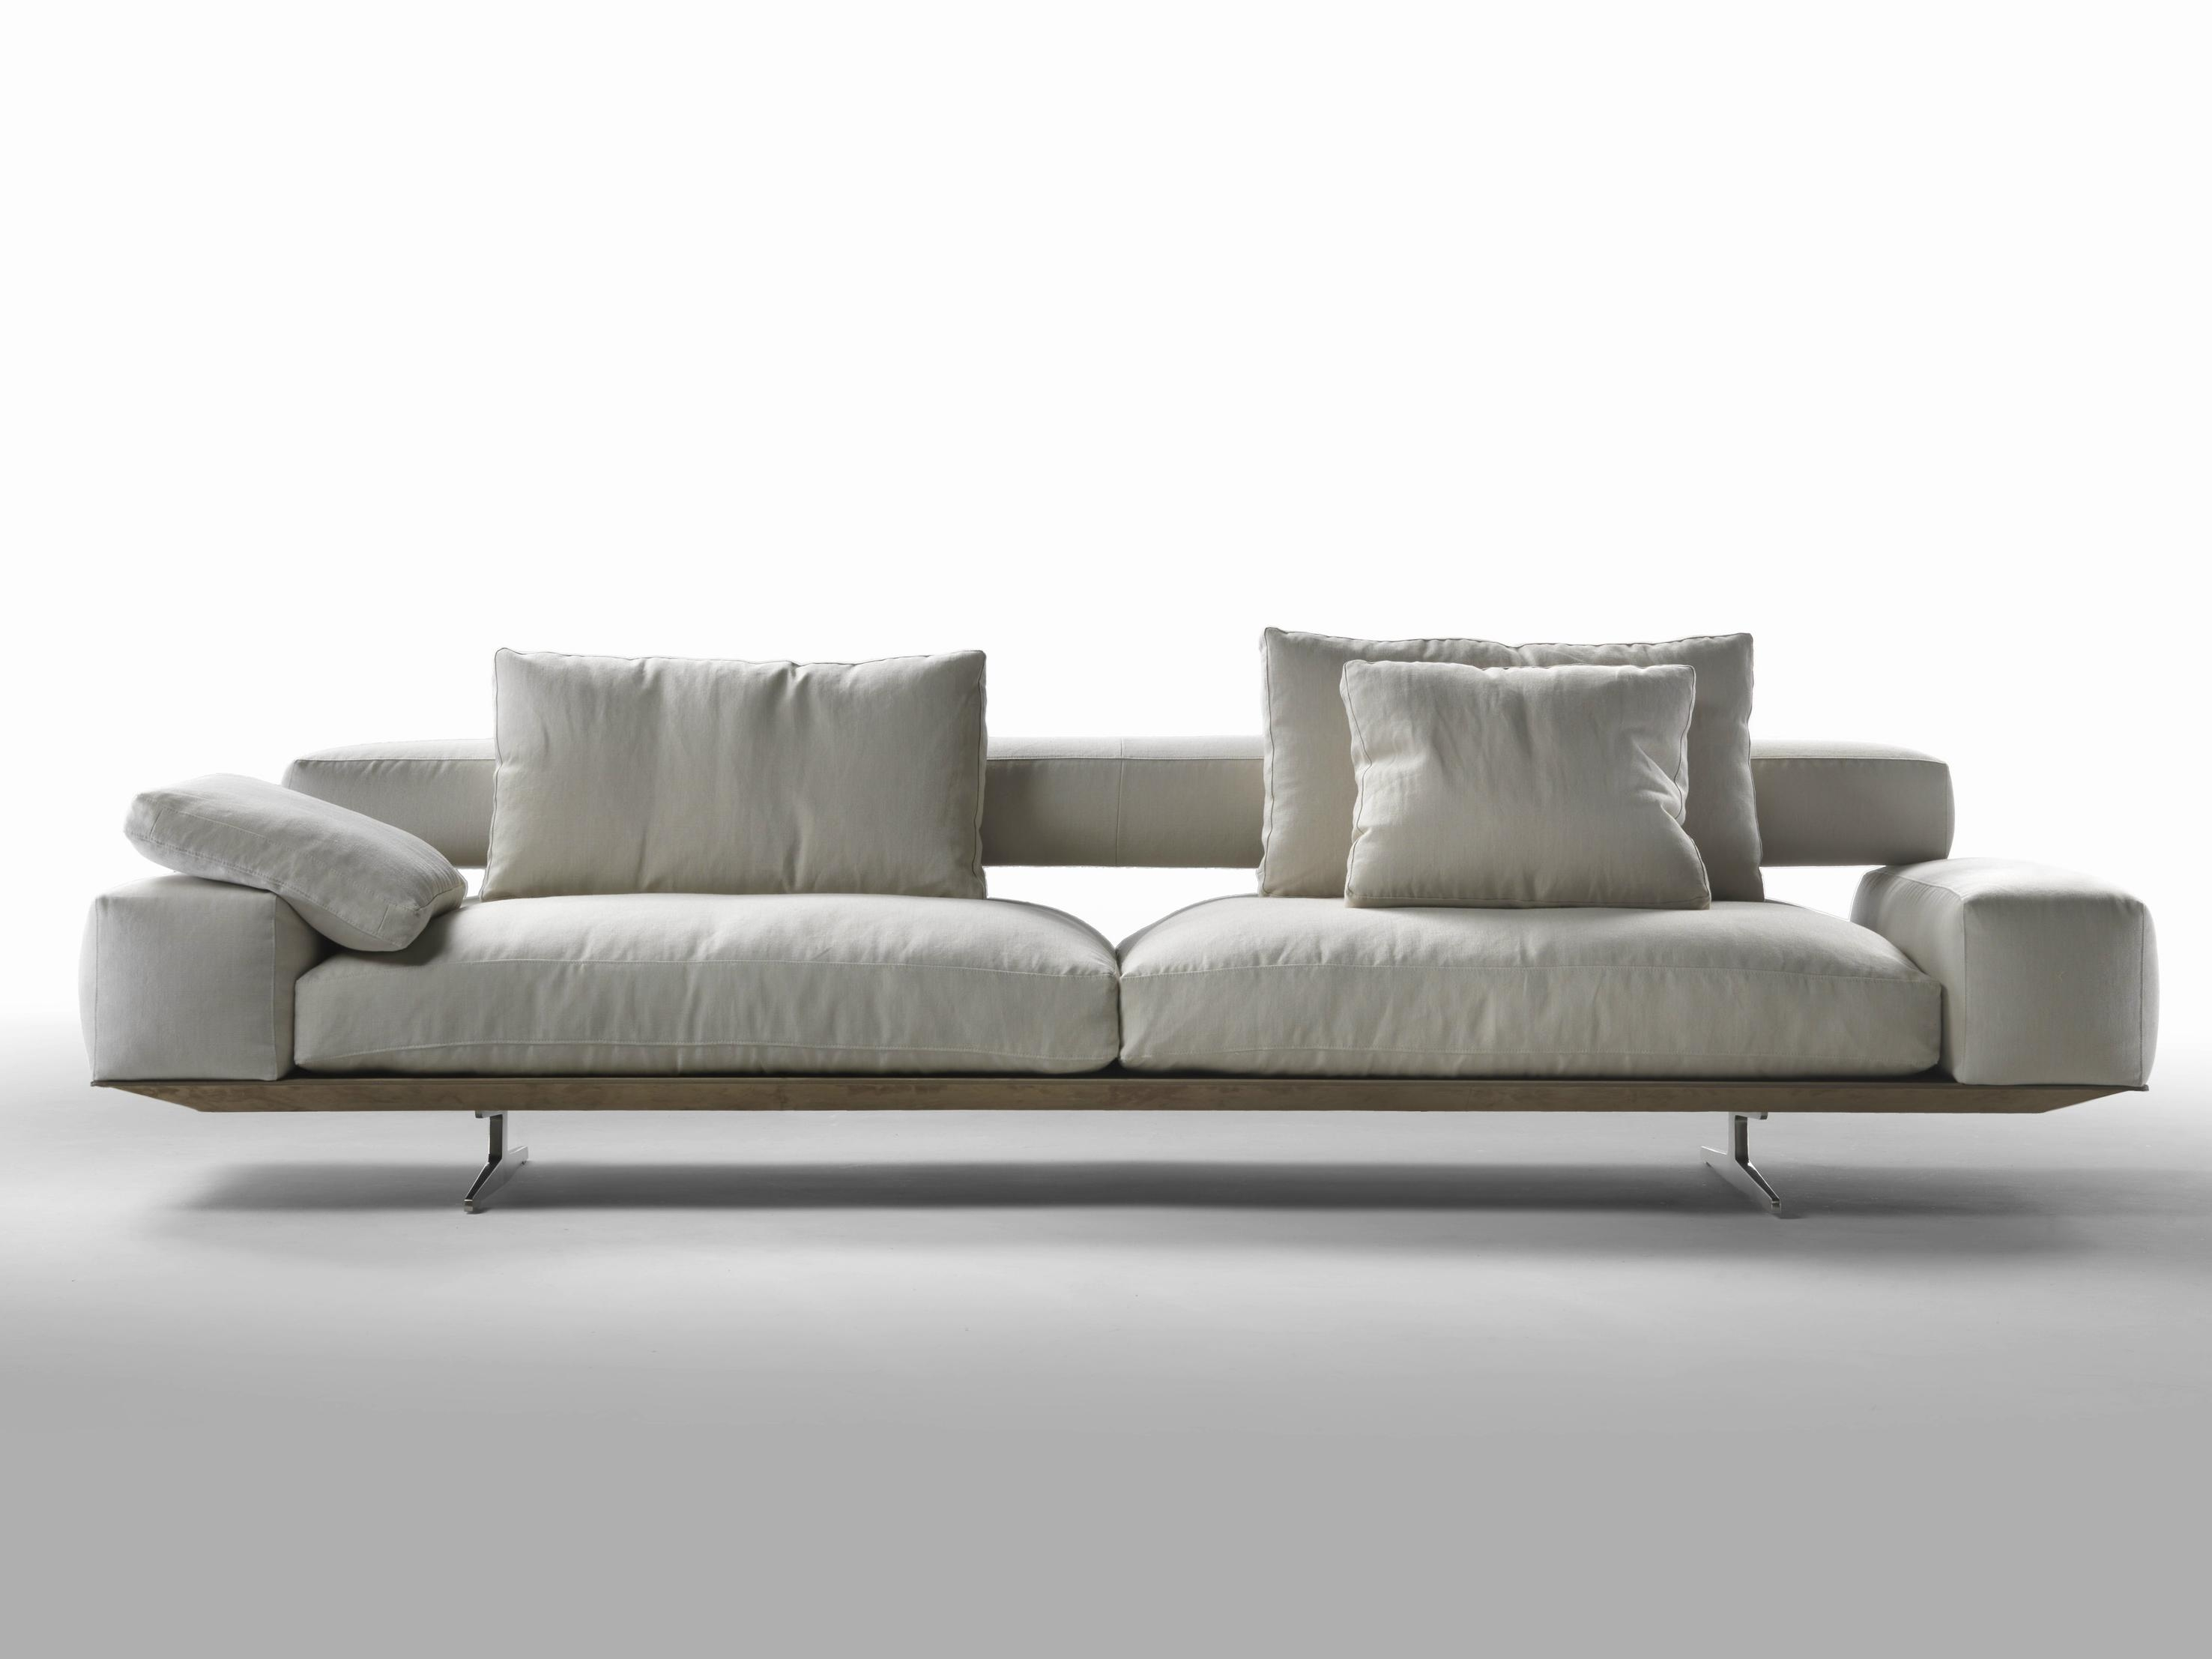 Wing Sofaantonio Citterio For Flexform | Sohomod Blog Throughout Flexform Sofas (Image 20 of 20)